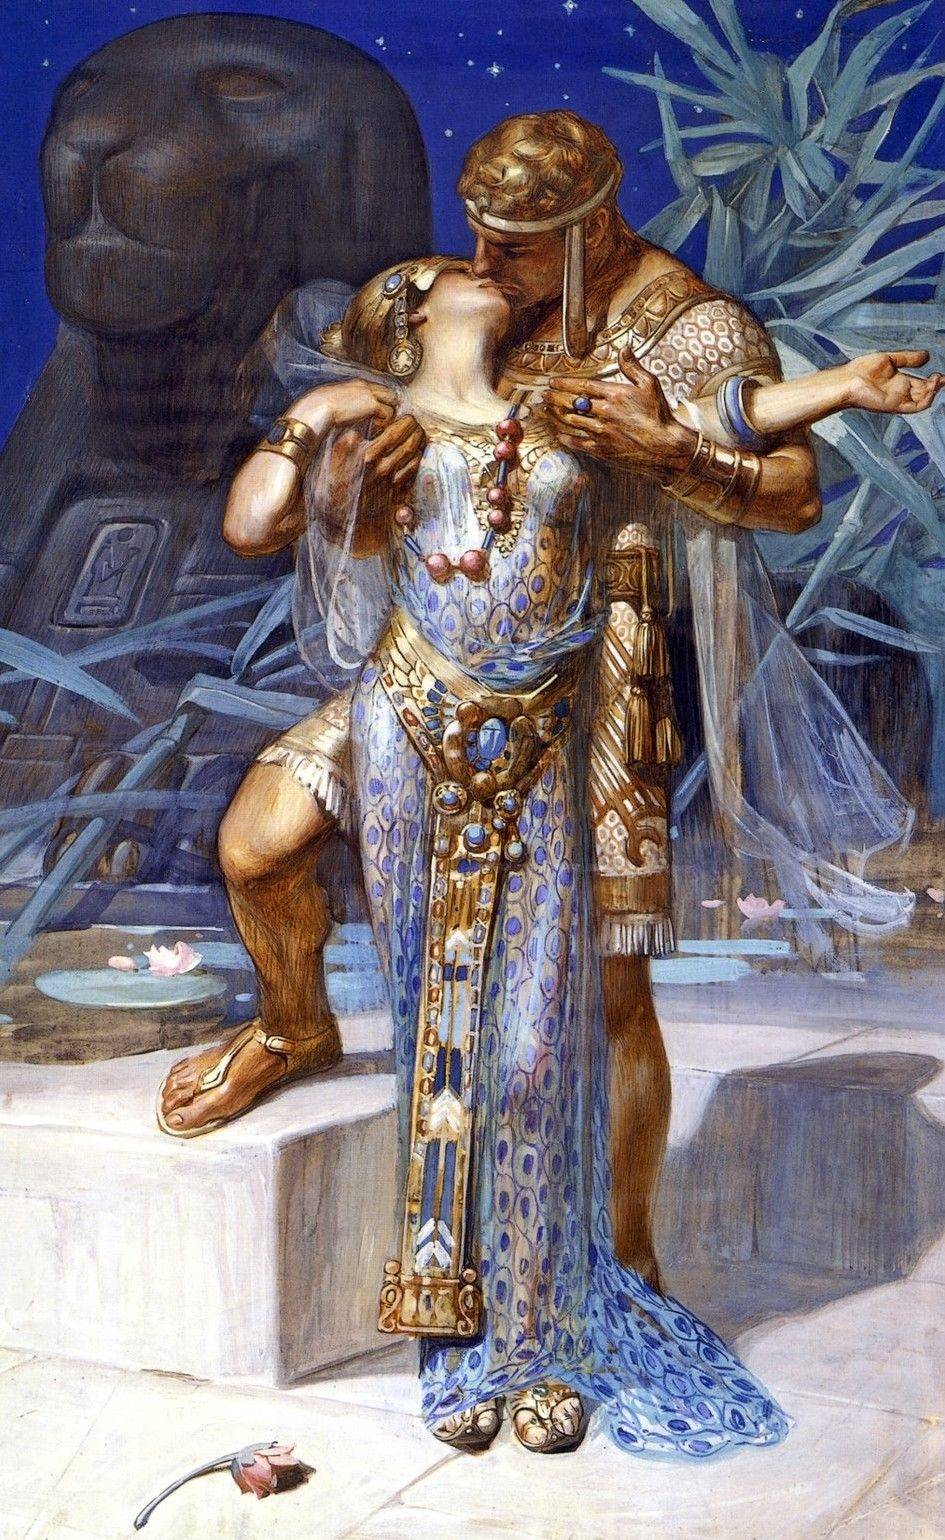 antony and cleopatra by jc leyendecker art antony and cleopatra by jc leyendecker